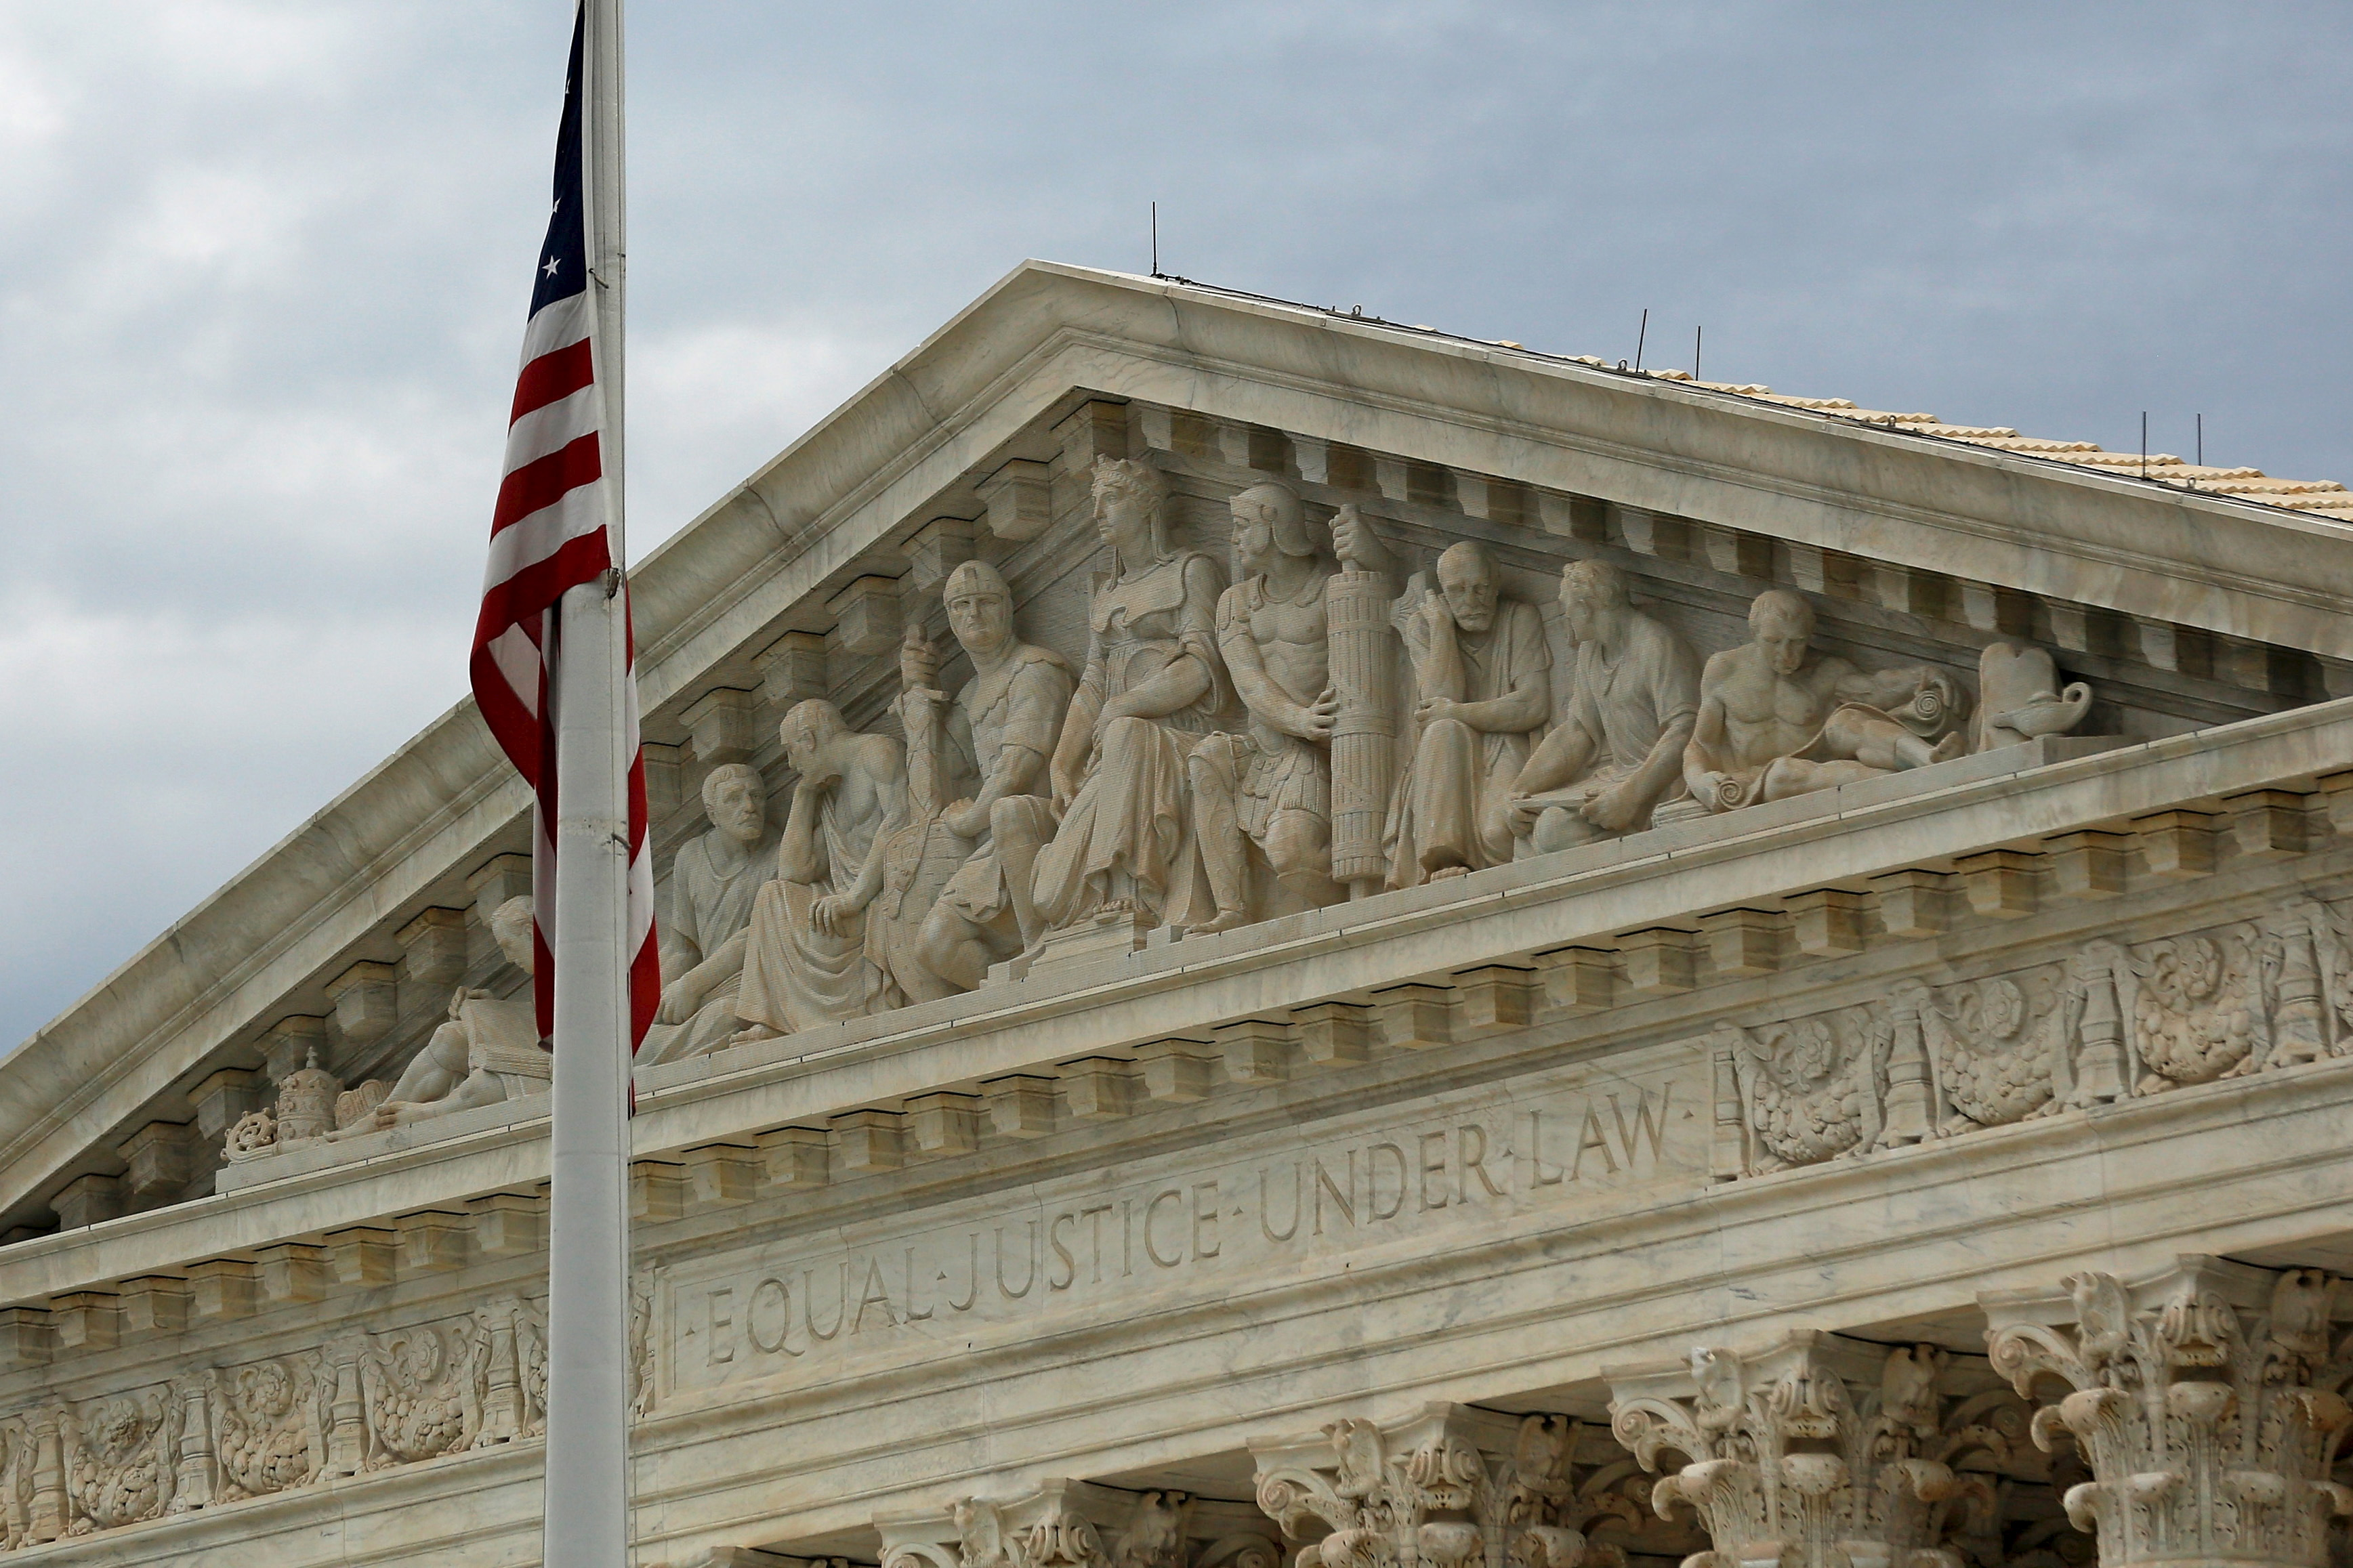 """A view of the U.S. Supreme Court building is seen in Washington, October 13, 2015. Hearing a death penalty case for the first time since their divisive lethal-injection ruling in June, the nine justices of U.S. Supreme Court on Wednesday appeared poised to rule against two brothers challenging their sentences for a Kansas crime spree known as the """"Wichita Massacre."""" REUTERS/Jonathan Ernst - RTS49ZK"""